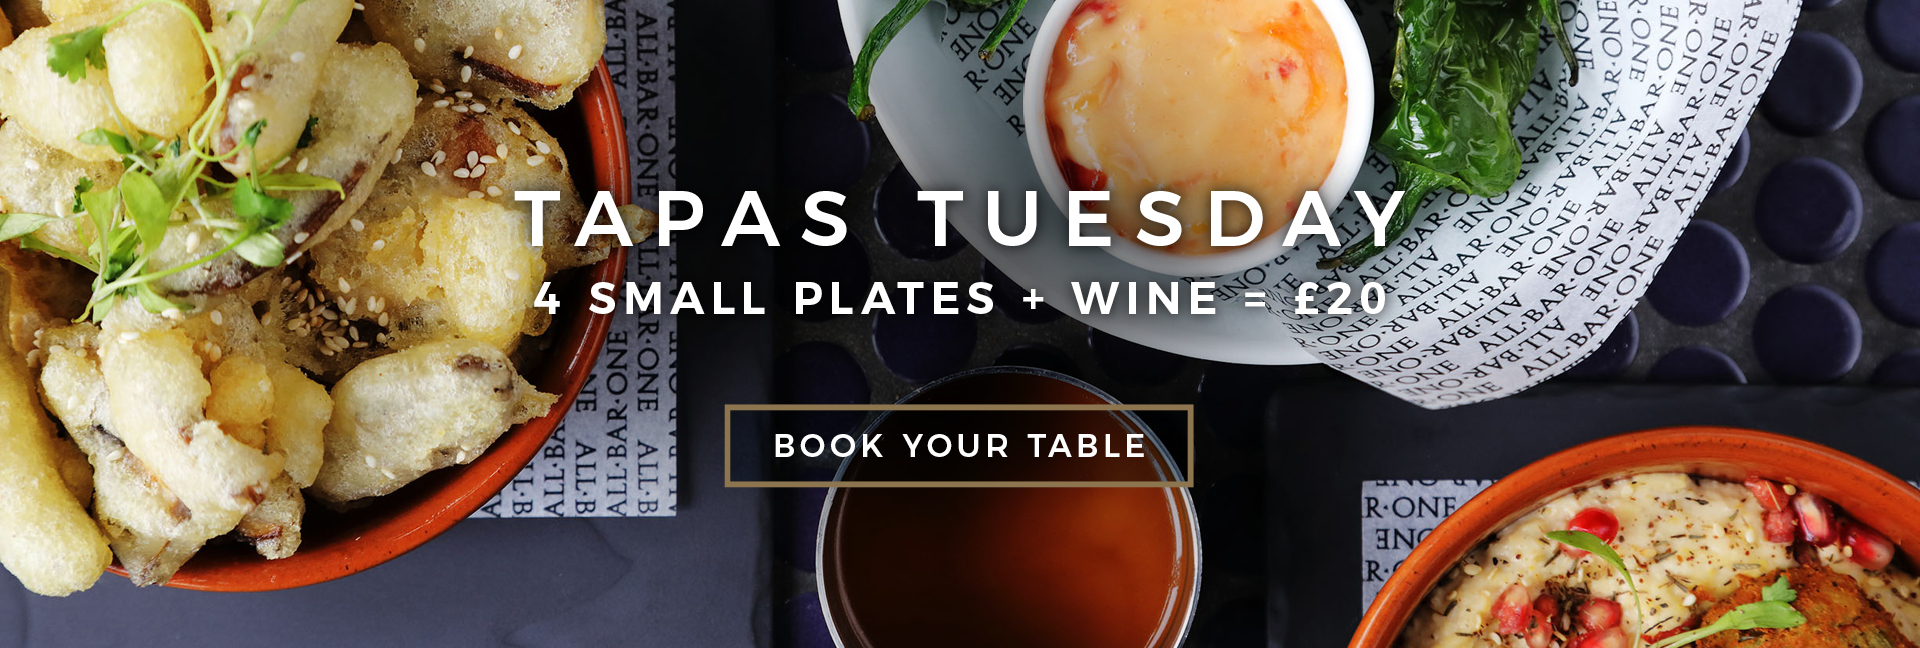 Tapas Tuesday at All Bar One Trafford Centre - Book now